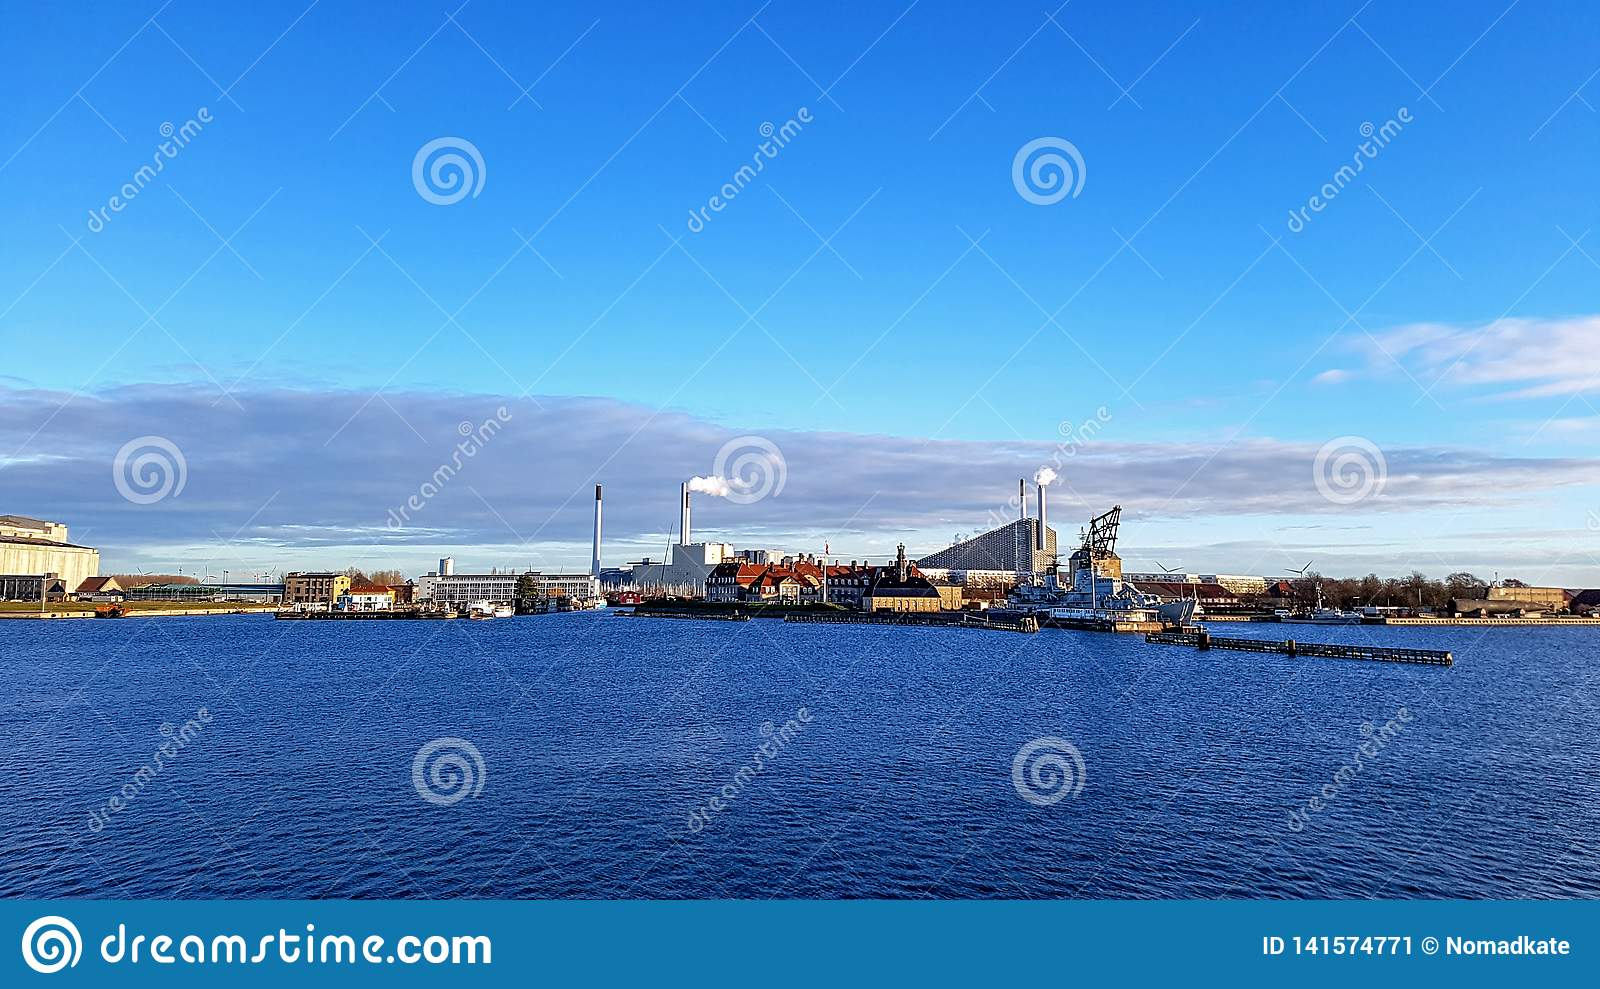 Copenhagen Industrial area district along sea with clear blue sky during sunset time